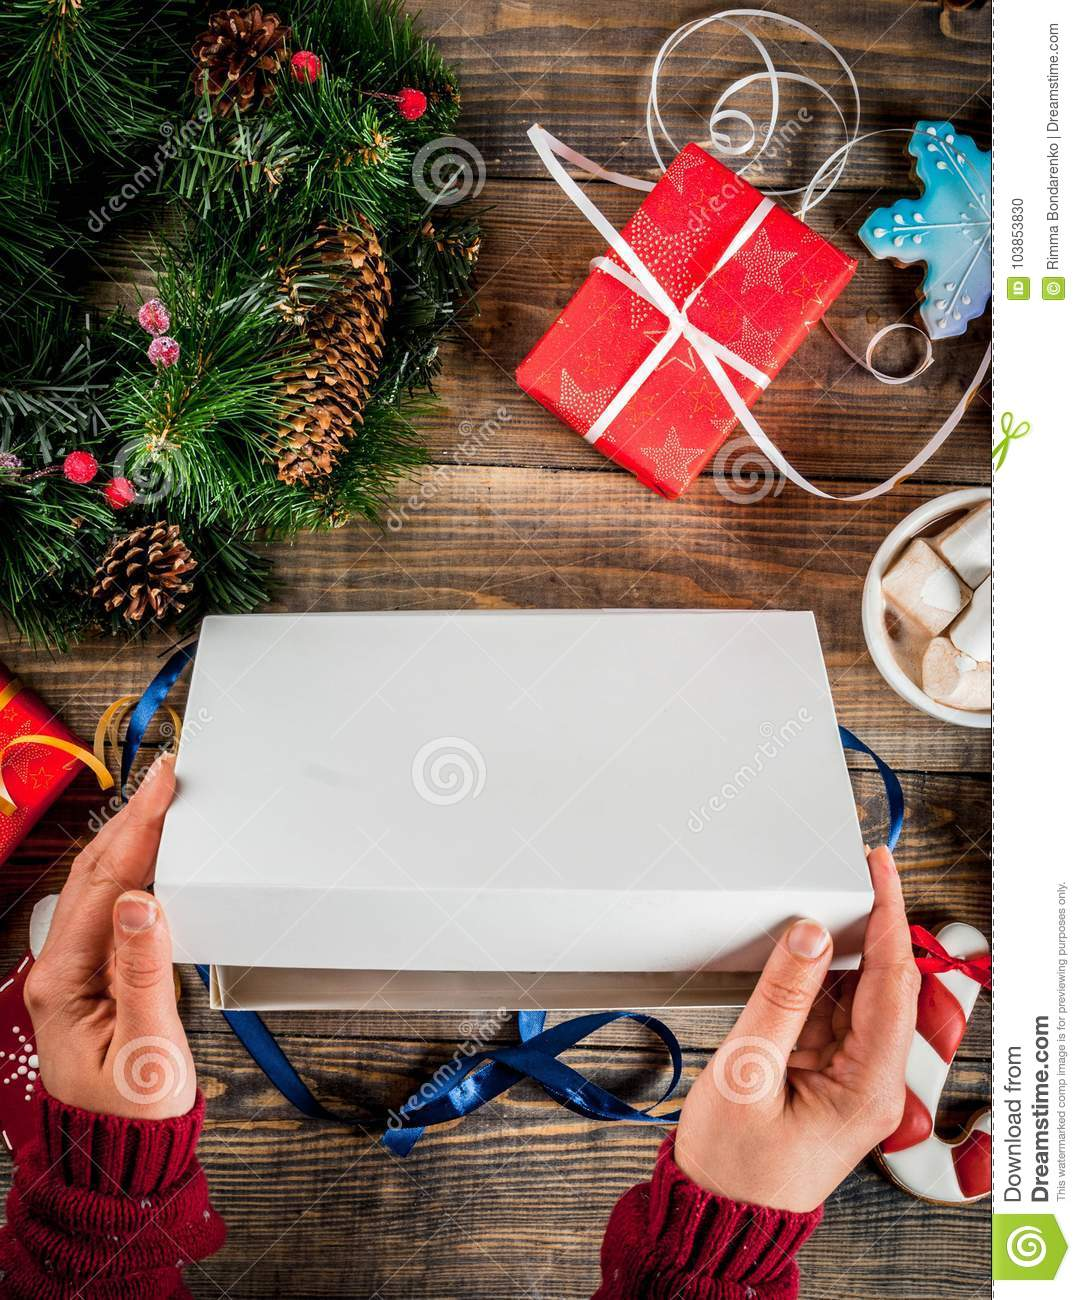 Christmas Gifts On Wooden Table Stock Photo - Image of celebrations ...